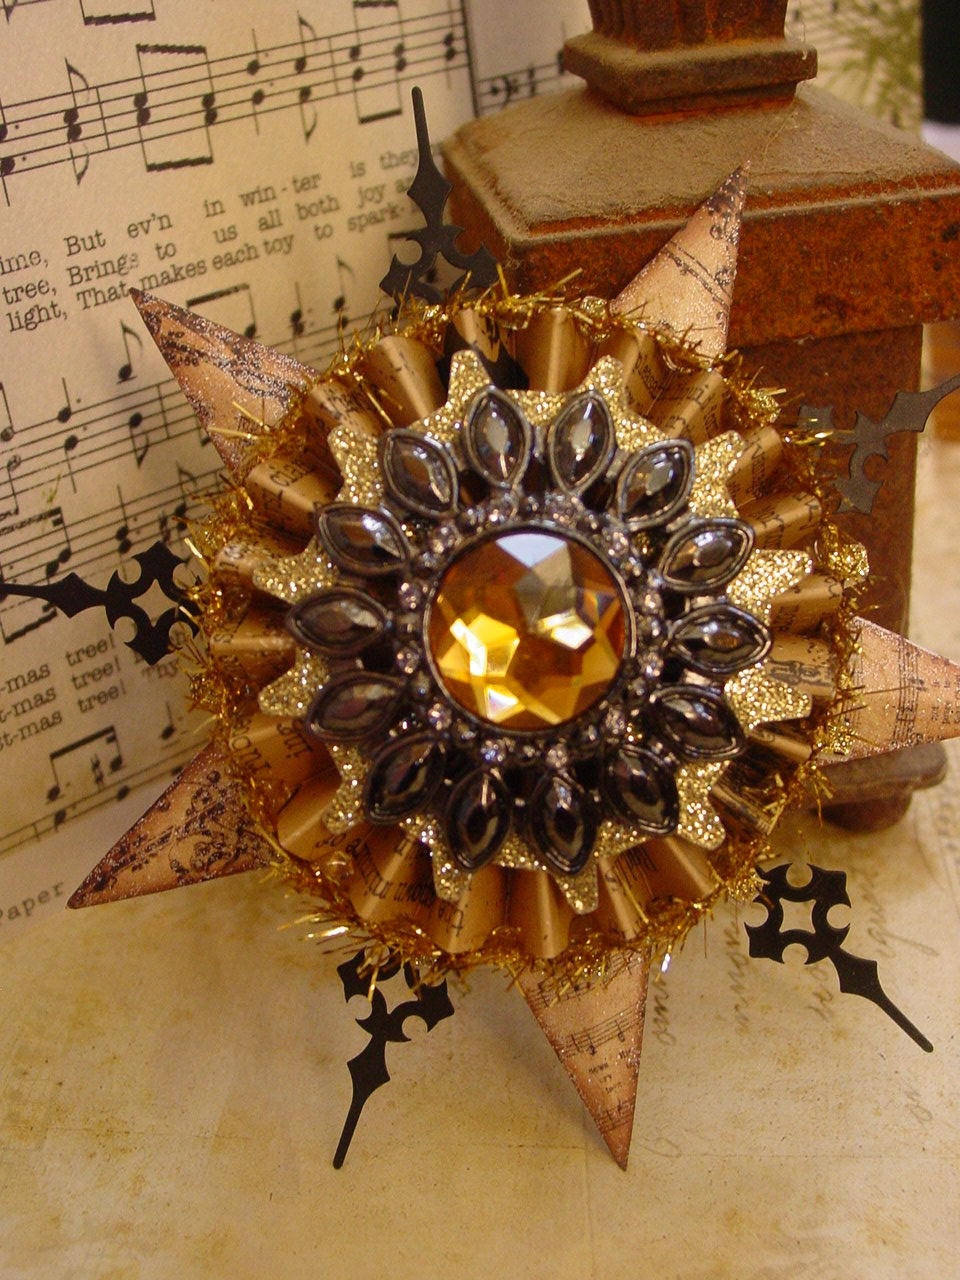 Altered Art Steampunk Style Assemblage Christmas Ornament